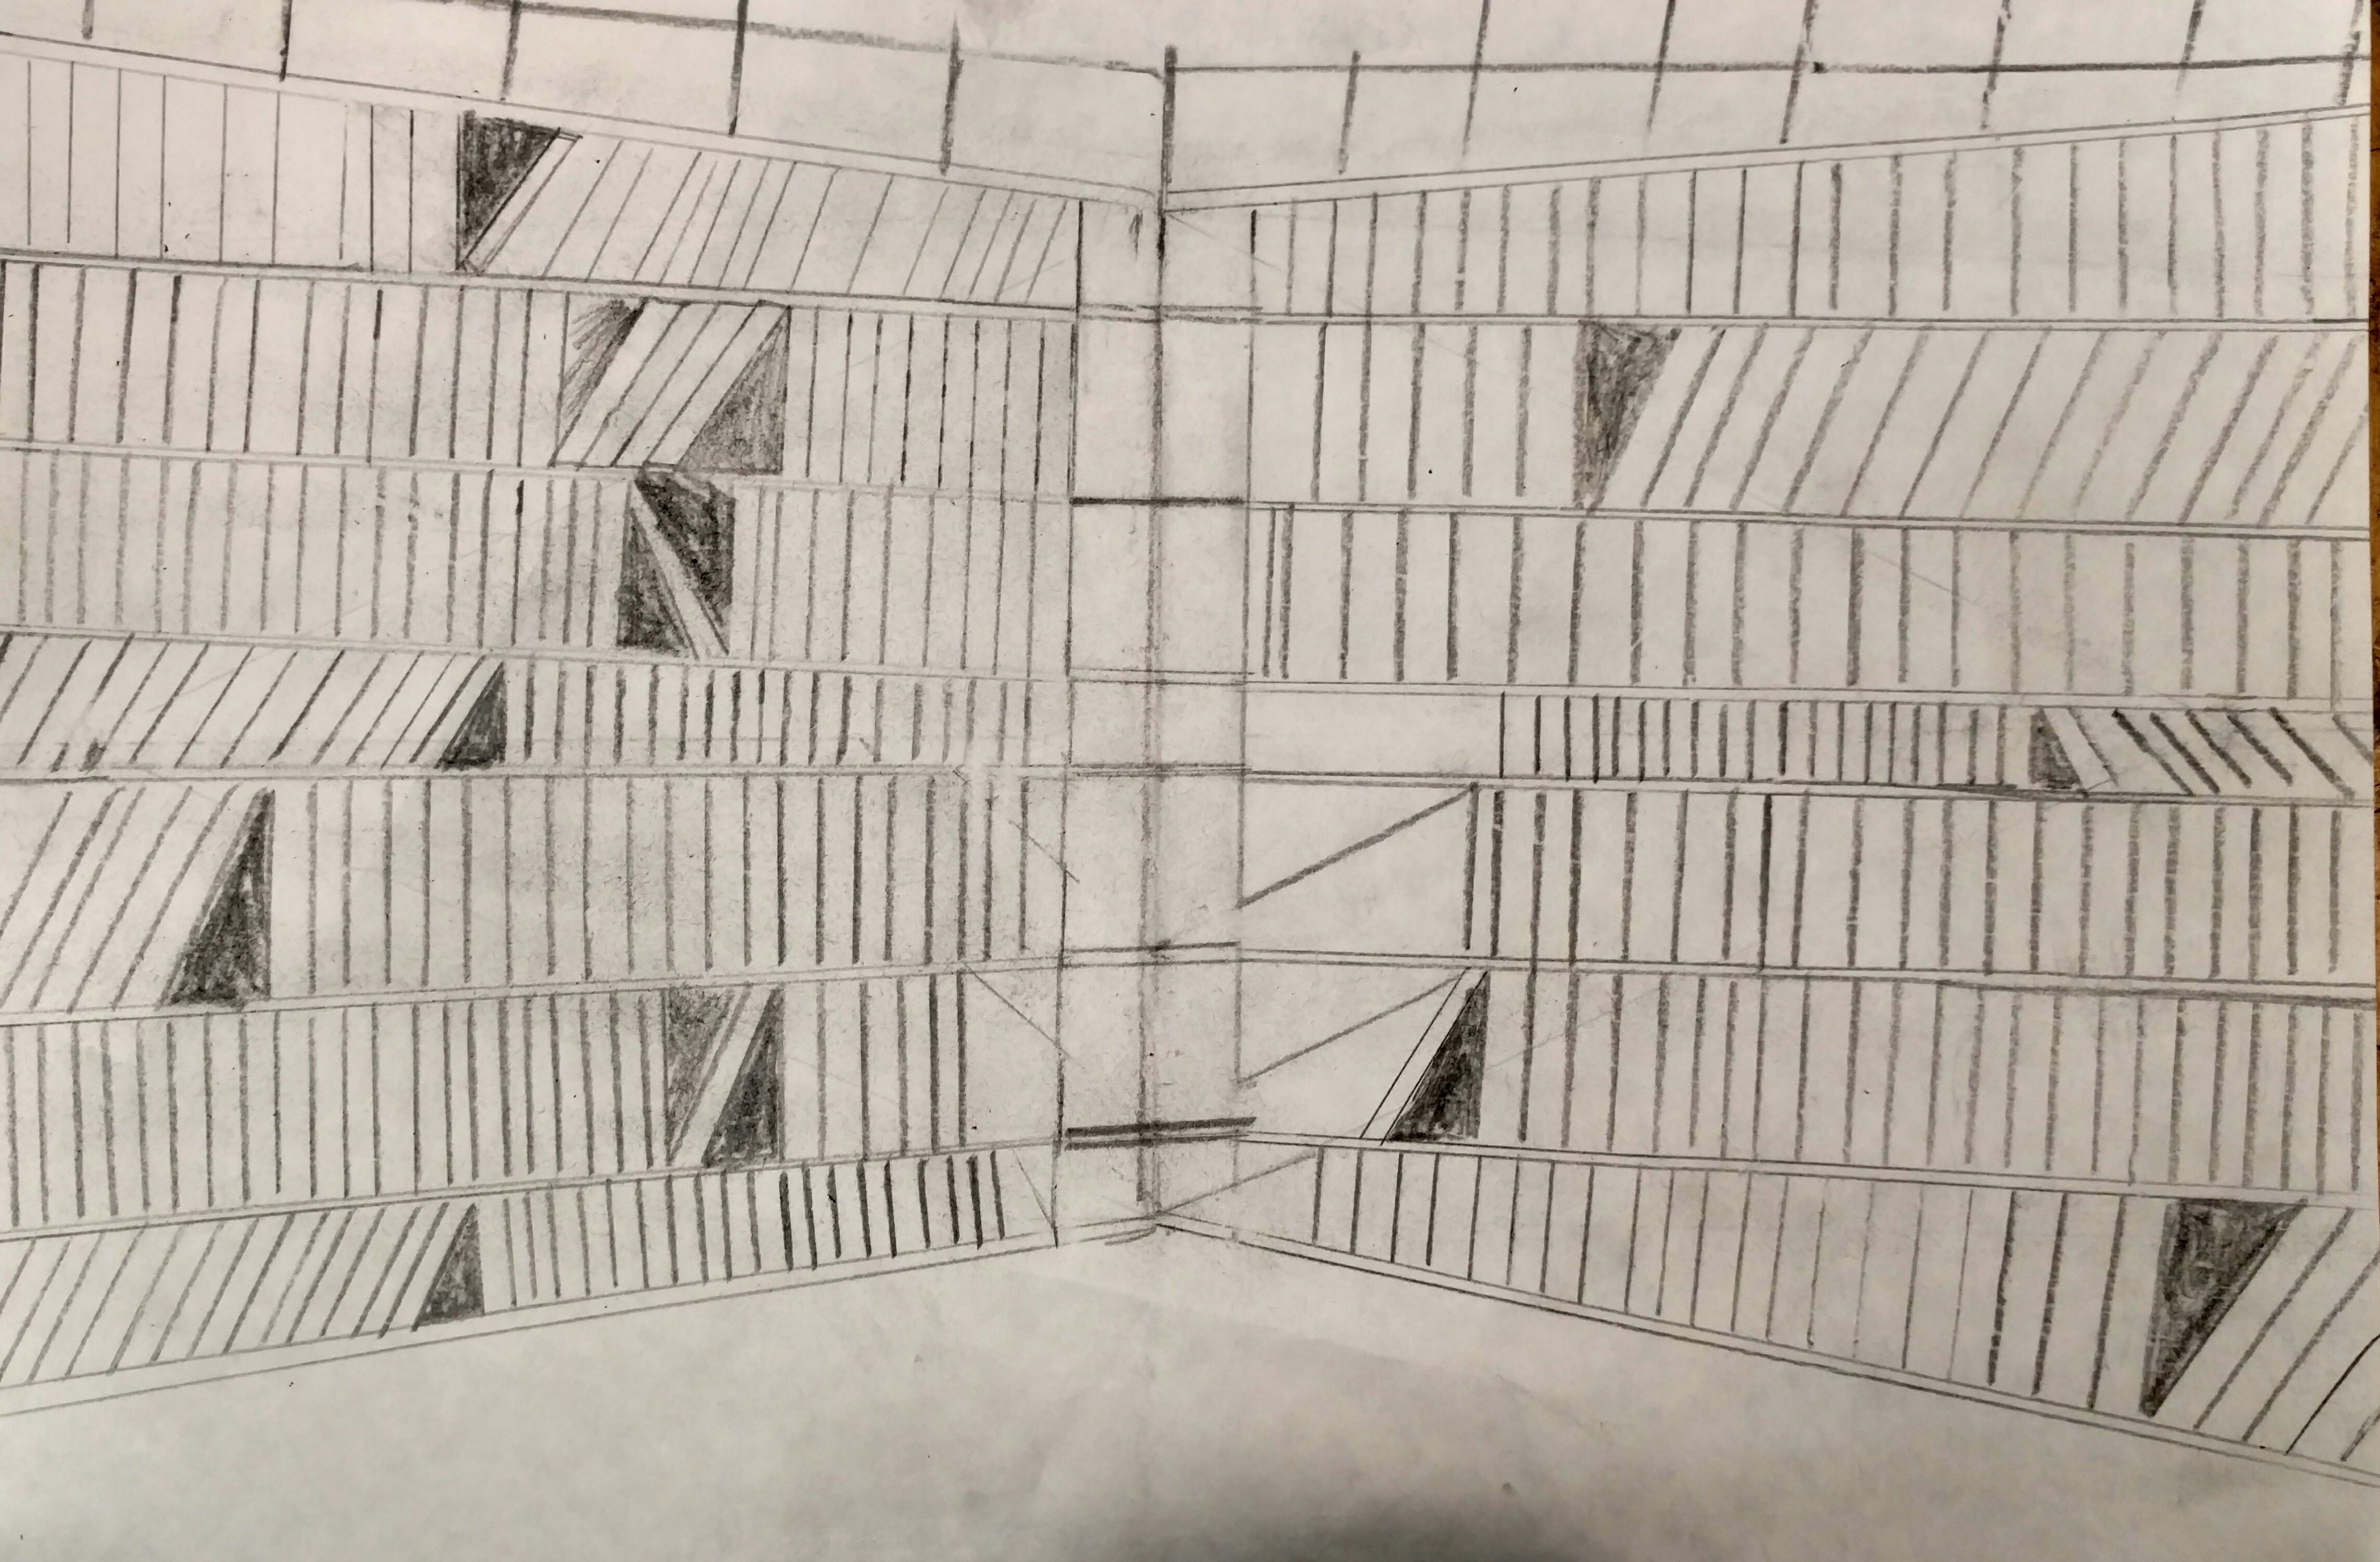 Title: Two-Point Perspective Project Medium: Graphite A two-point perspective drawing of a library. Made with pencil. I used Two-Point Perspective to show two walls come together in a corner. I shaded in shadows.